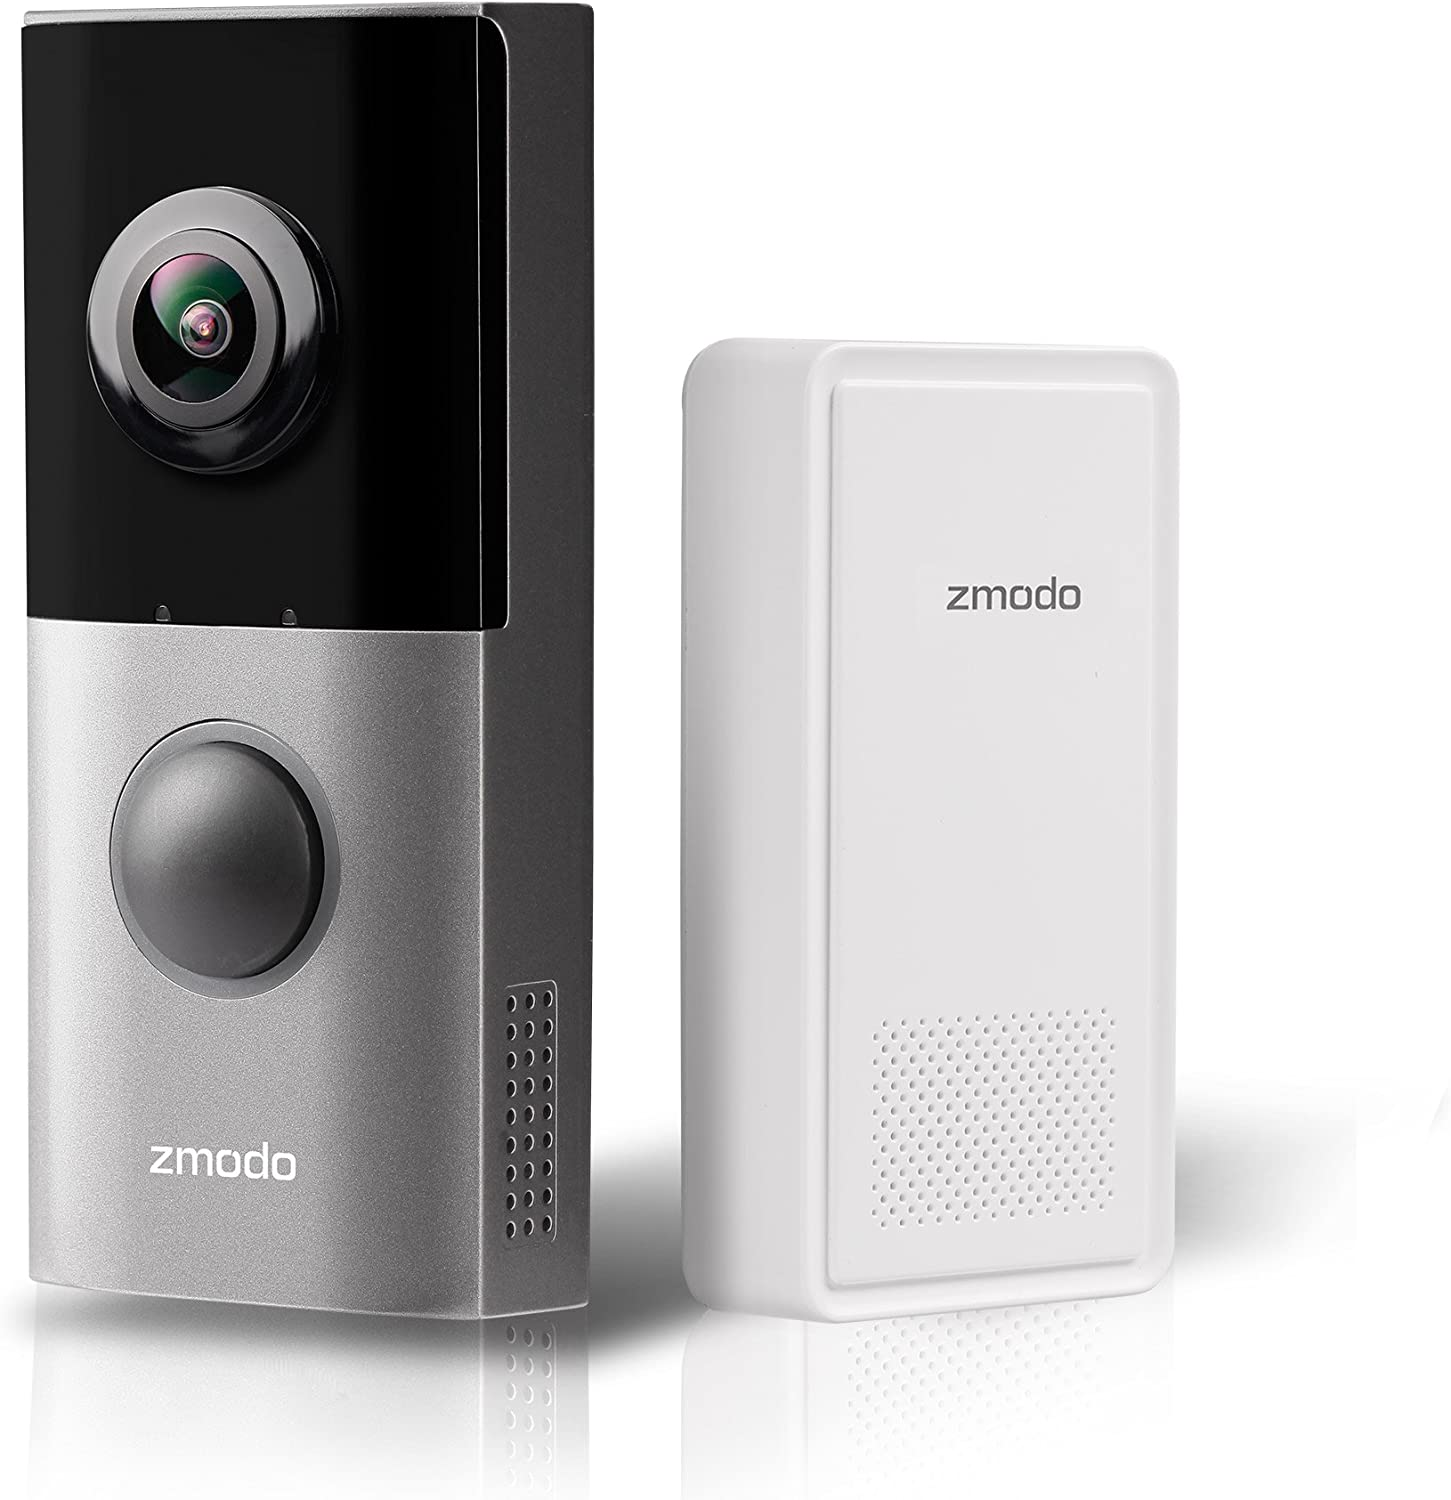 Zmodo Greet Pro Smart Video Doorbell with WiFi Extender, Full HD 180 Degree Wide Angle Camera, Dual Band